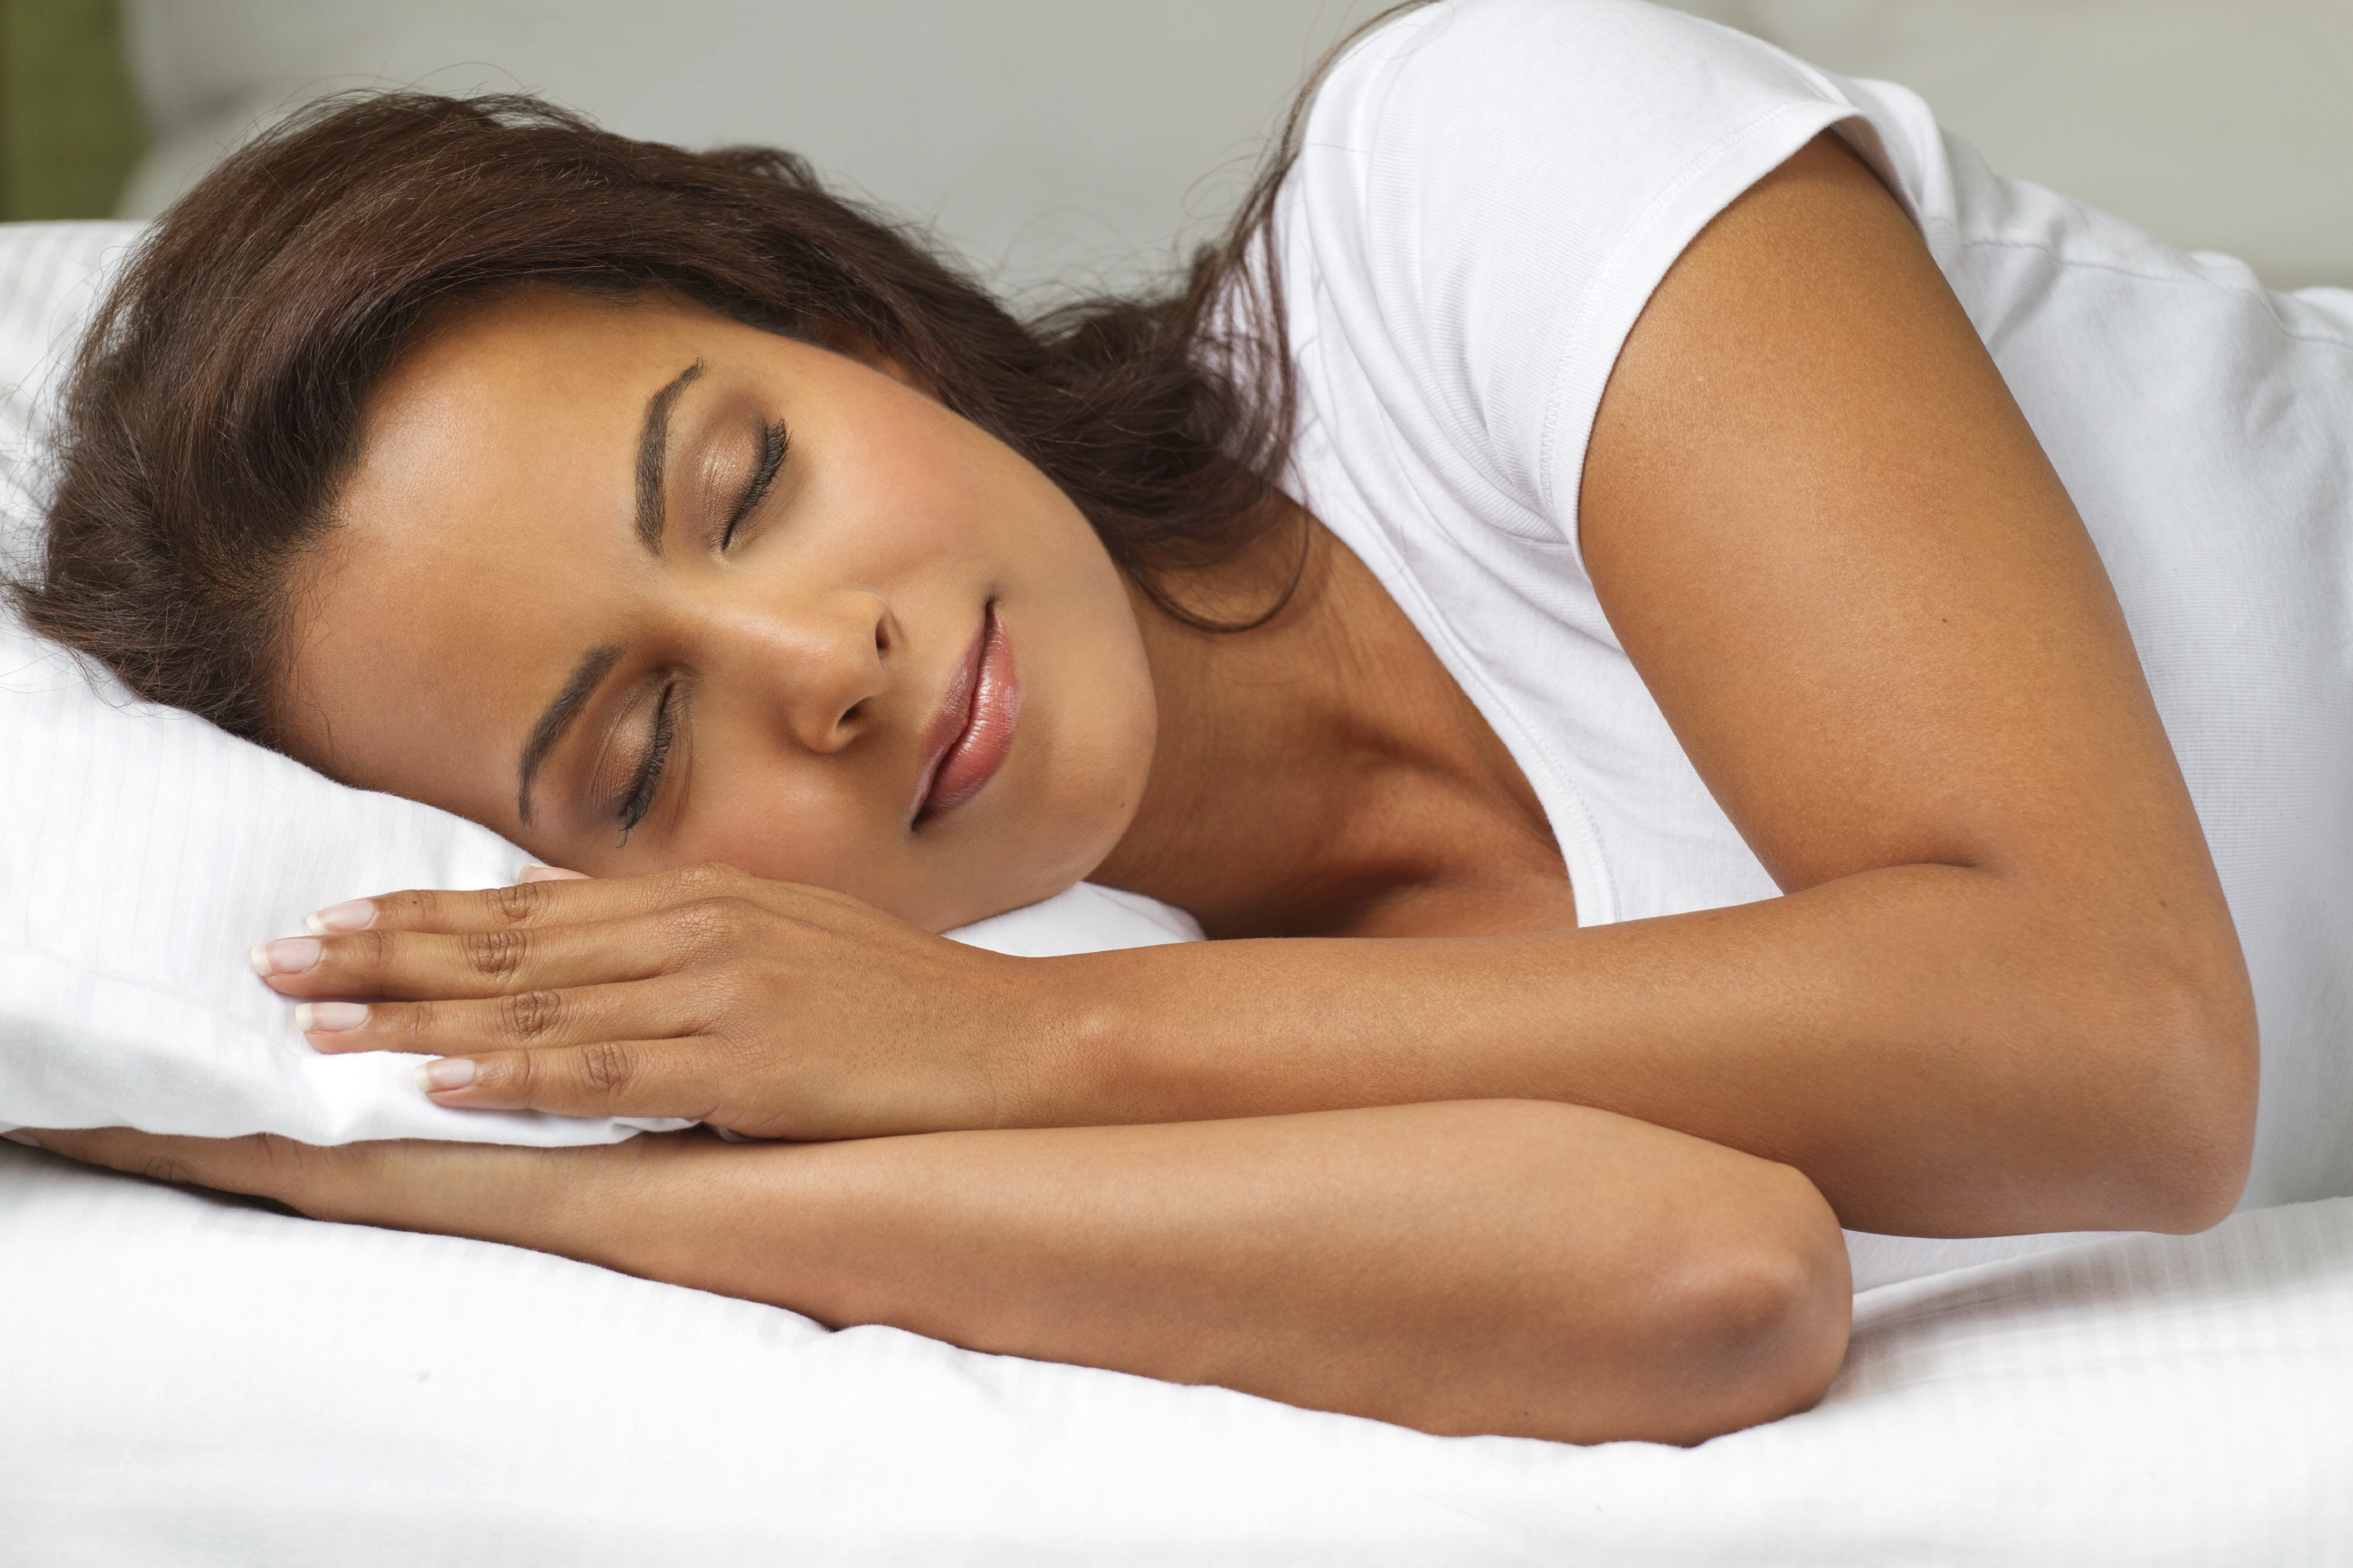 Healthy sleep is a critical part of good health - and many Americans are lacking in it.